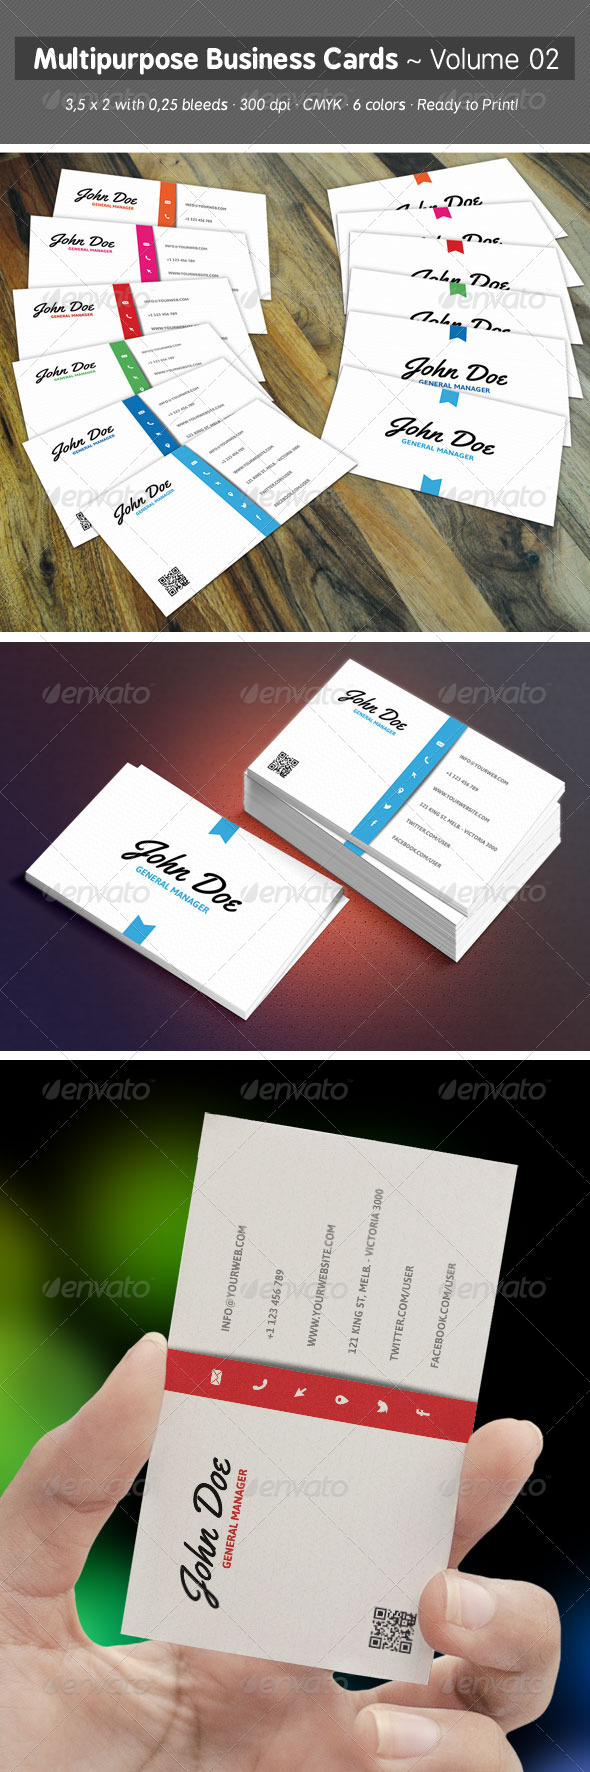 Multipurpose Business Cards - Volume 02 - Creative Business Cards